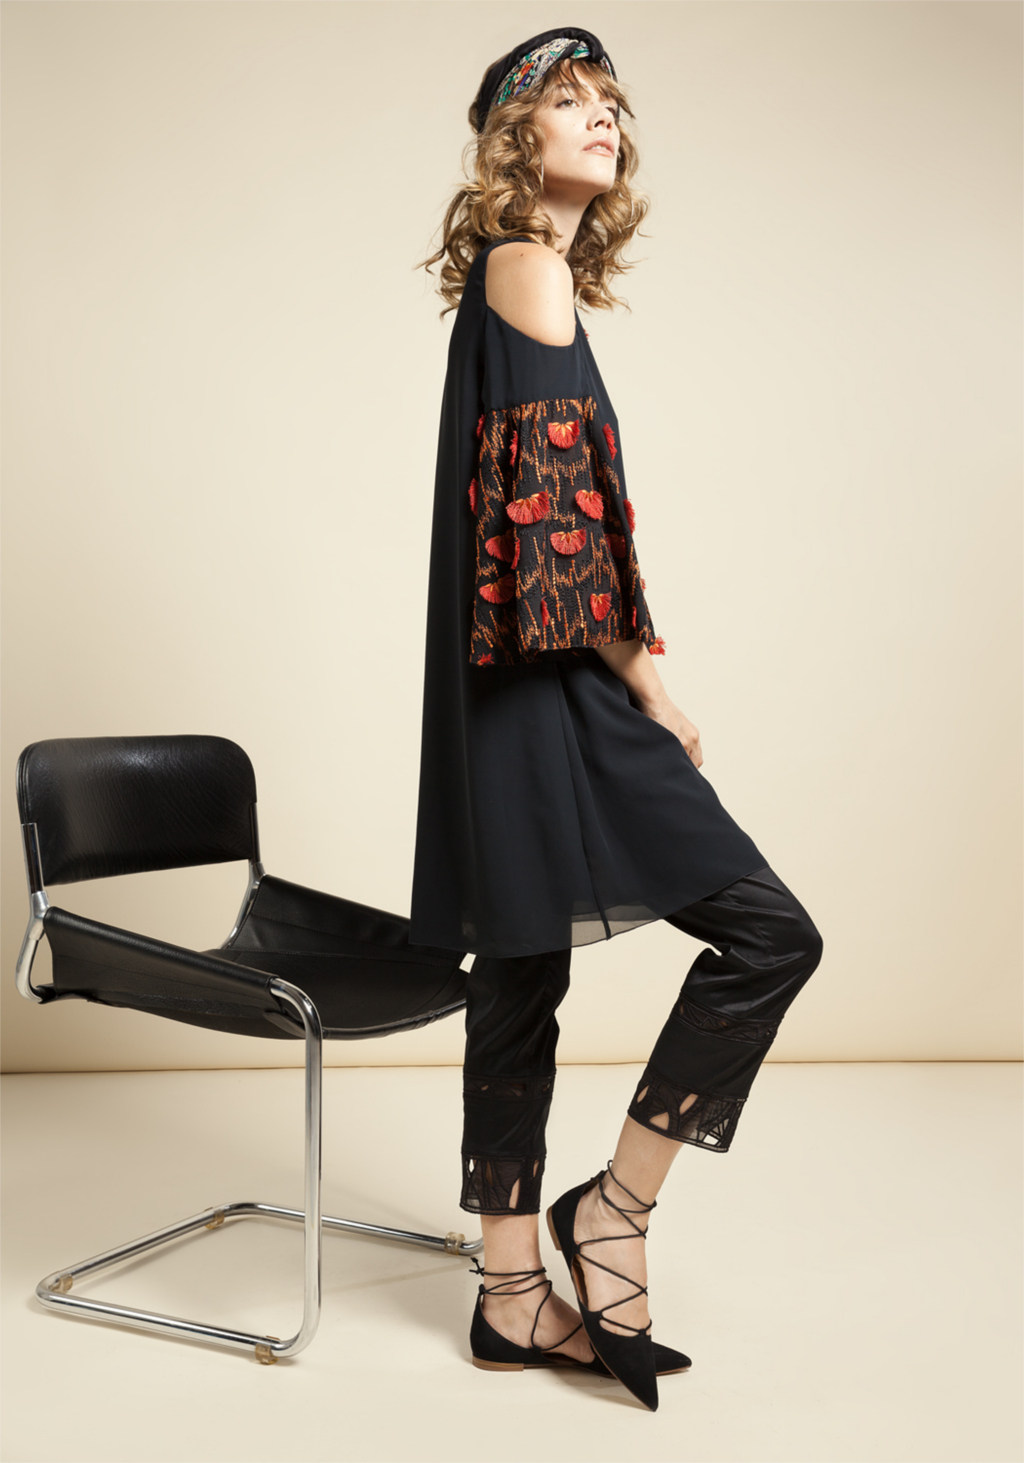 Black chiffon dress with orange & red ethnic floral embroidery - Black strech chantung with insert in unic embroidery organza